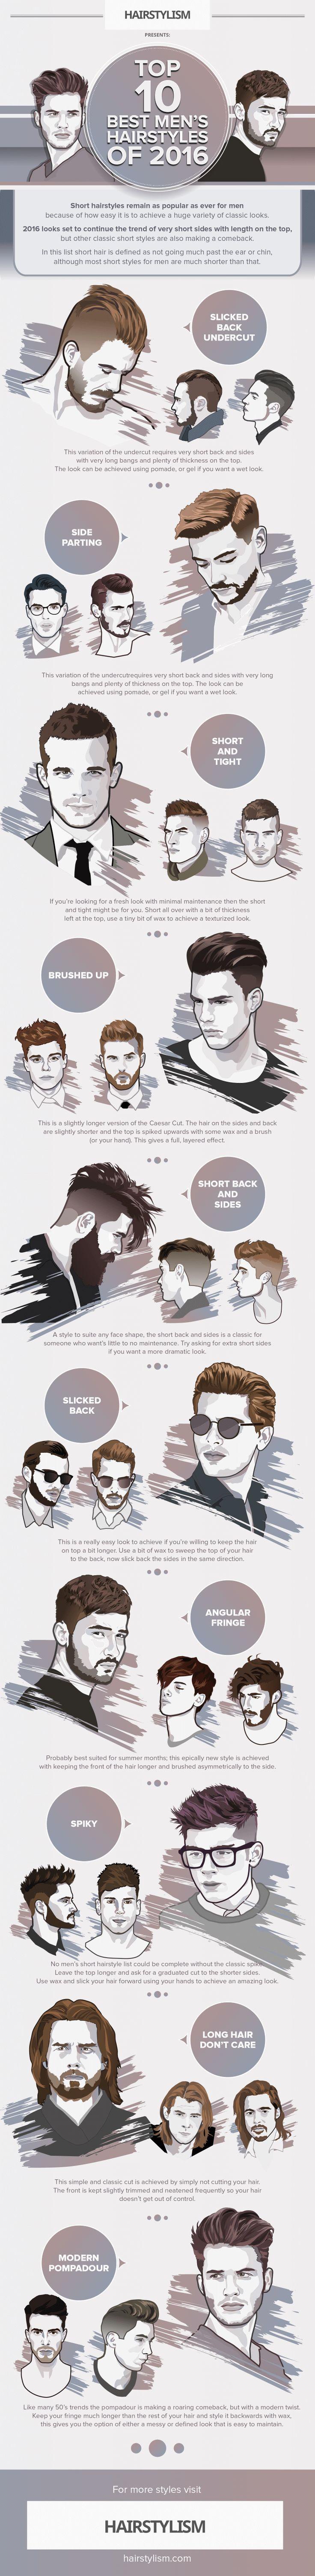 Men's Hairstyles: Pick Your Haircut For 2016